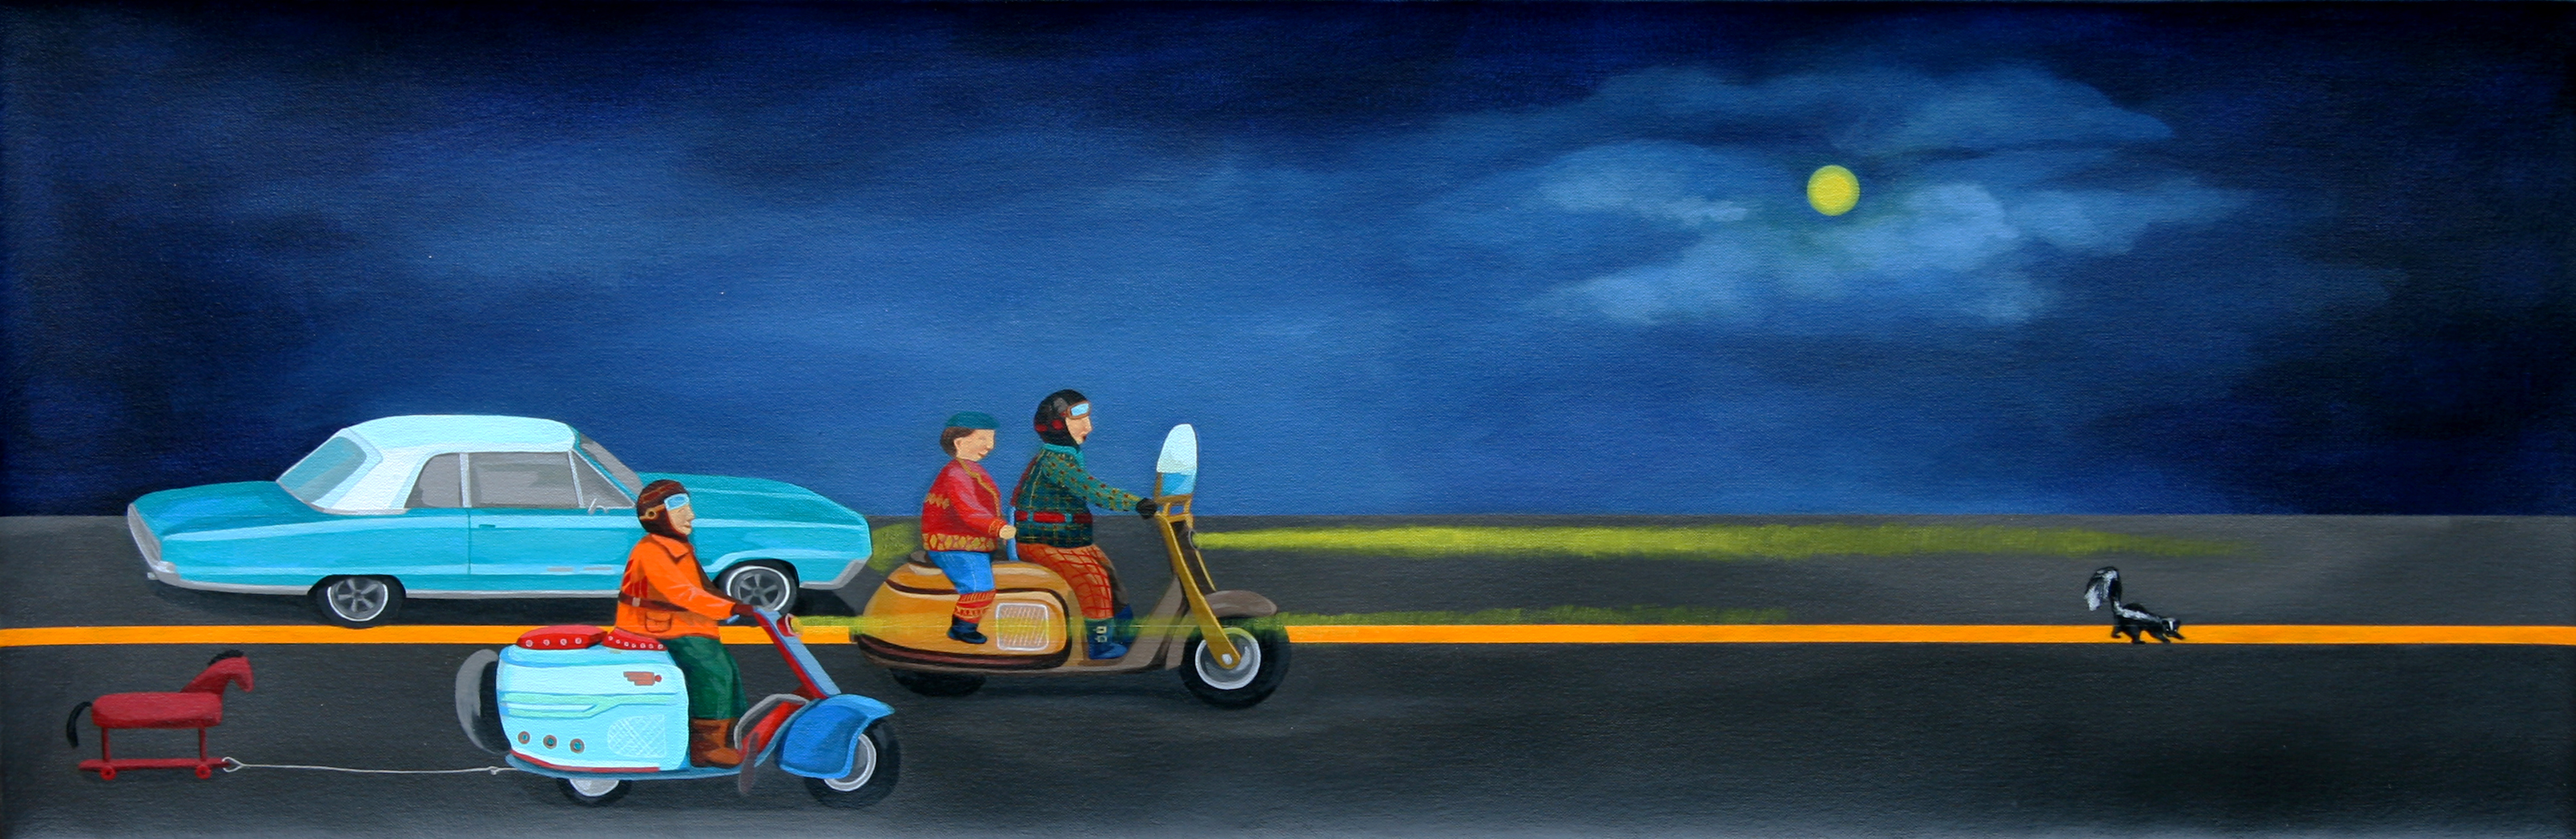 스컹크사냥_2008_Acrylic on canvas_45x100cm